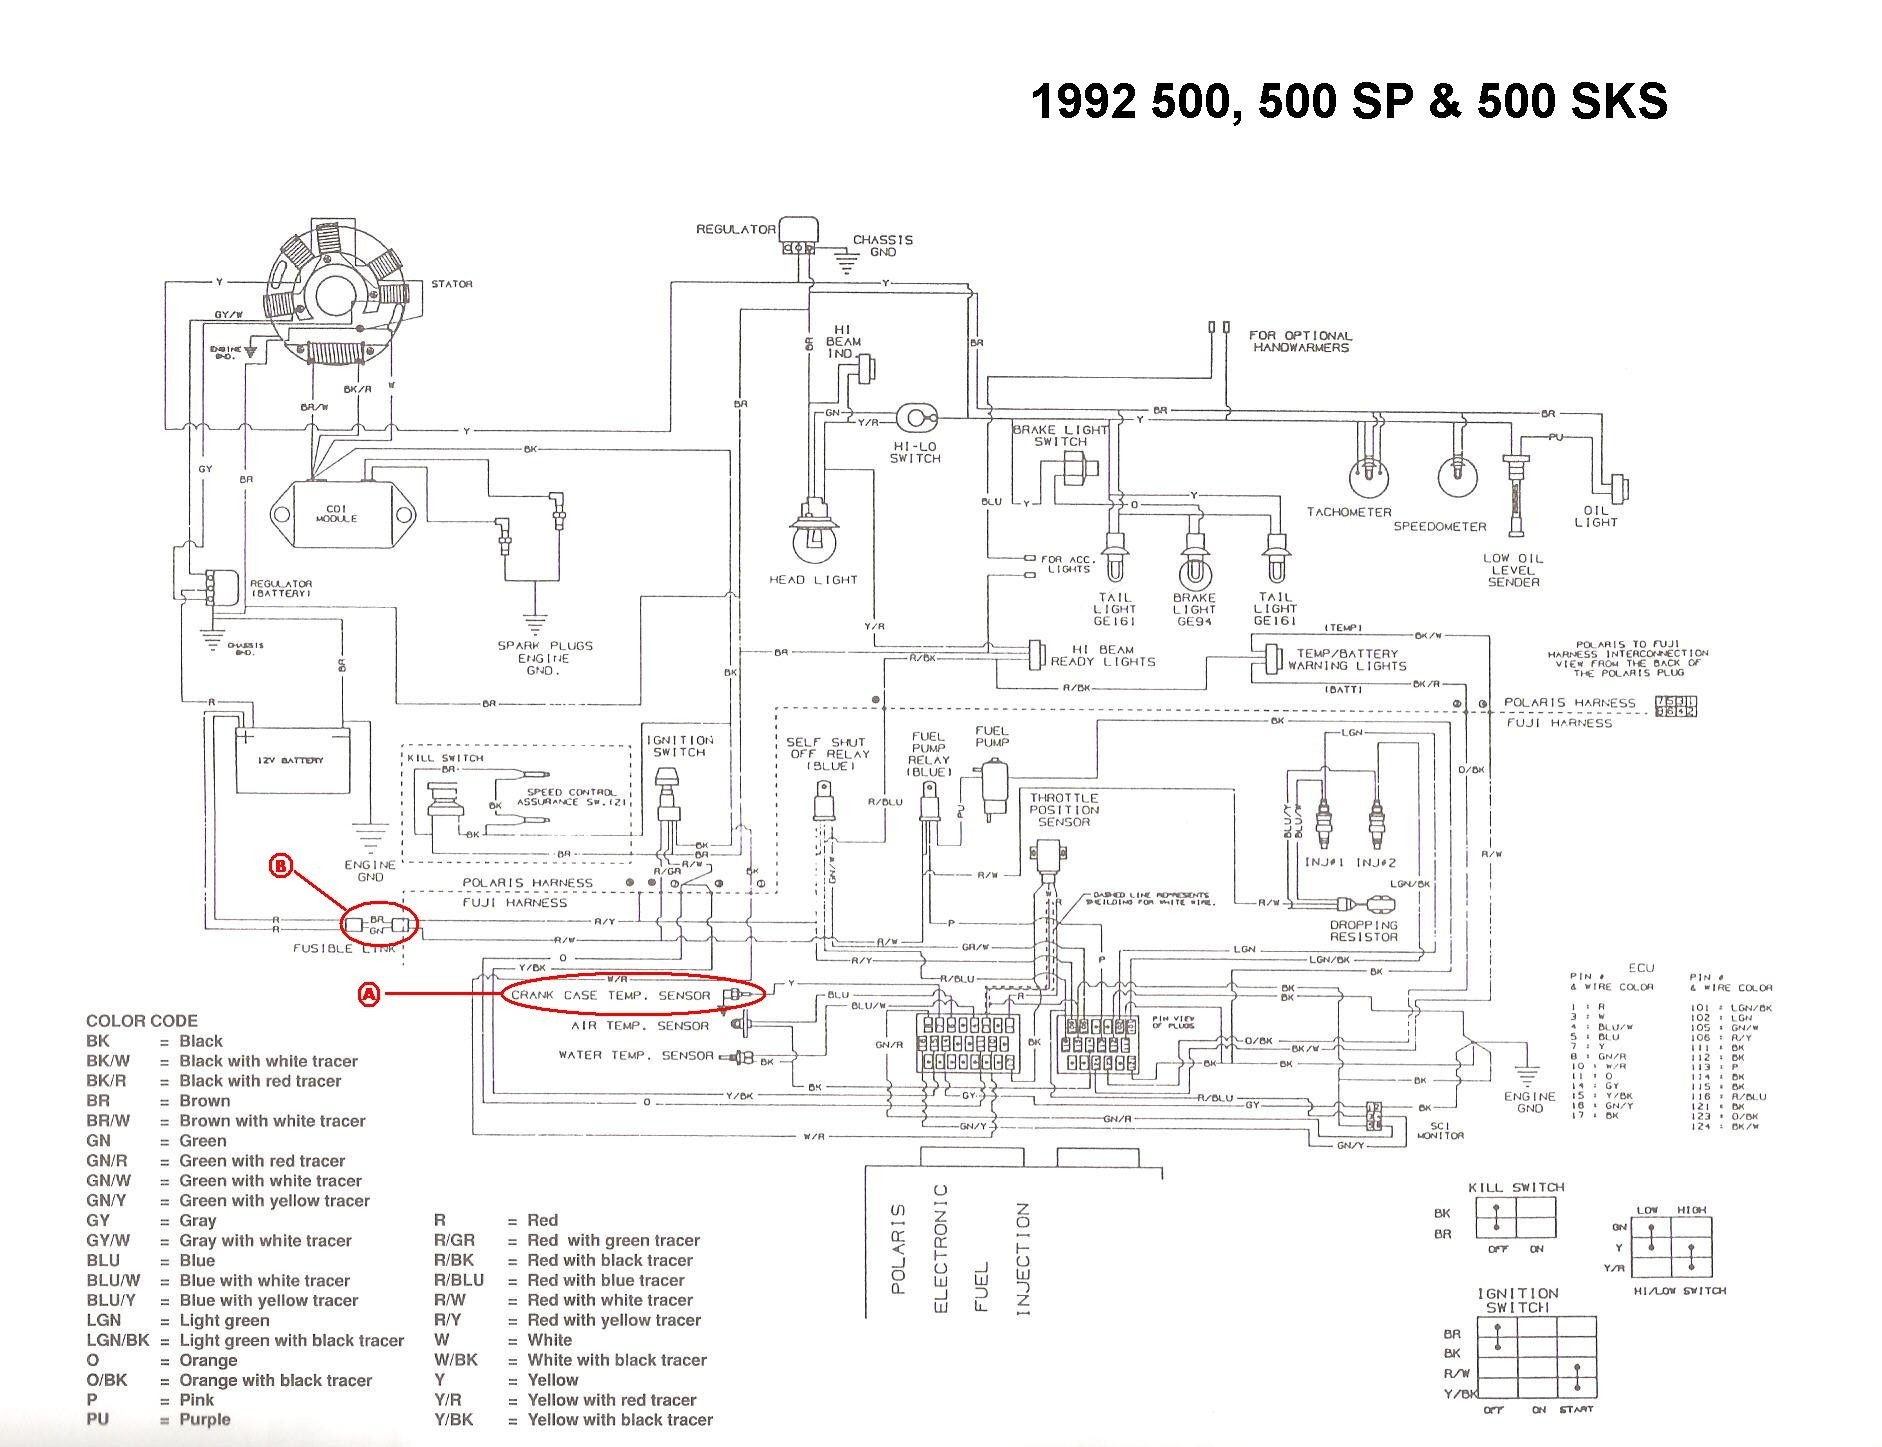 Polaris 500 Xc Sp Wiring Diagram Polaris Outlaw 500 Wiring